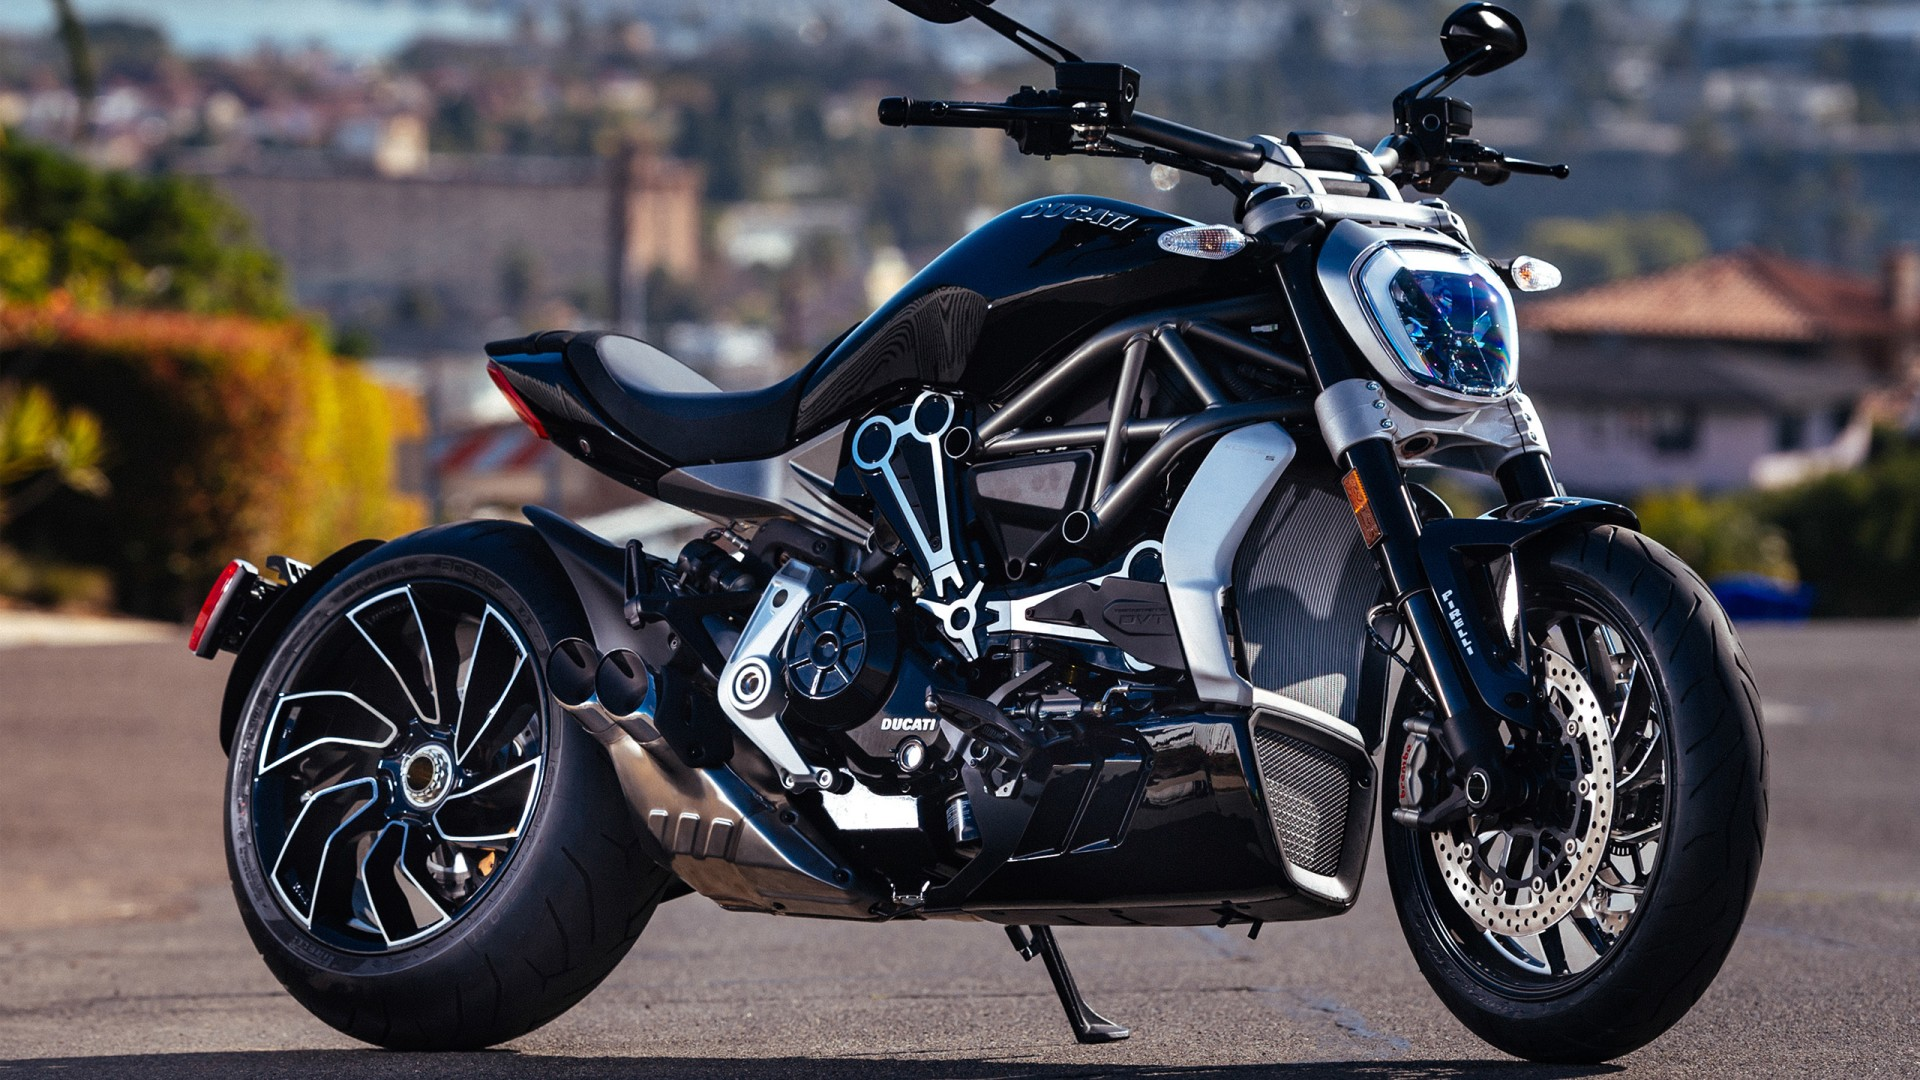 Windows 10 Wallpaper Hd 1920x1080 Cars Ducati Diavel 2017 Wallpapers Hd Wallpapers Id 19669